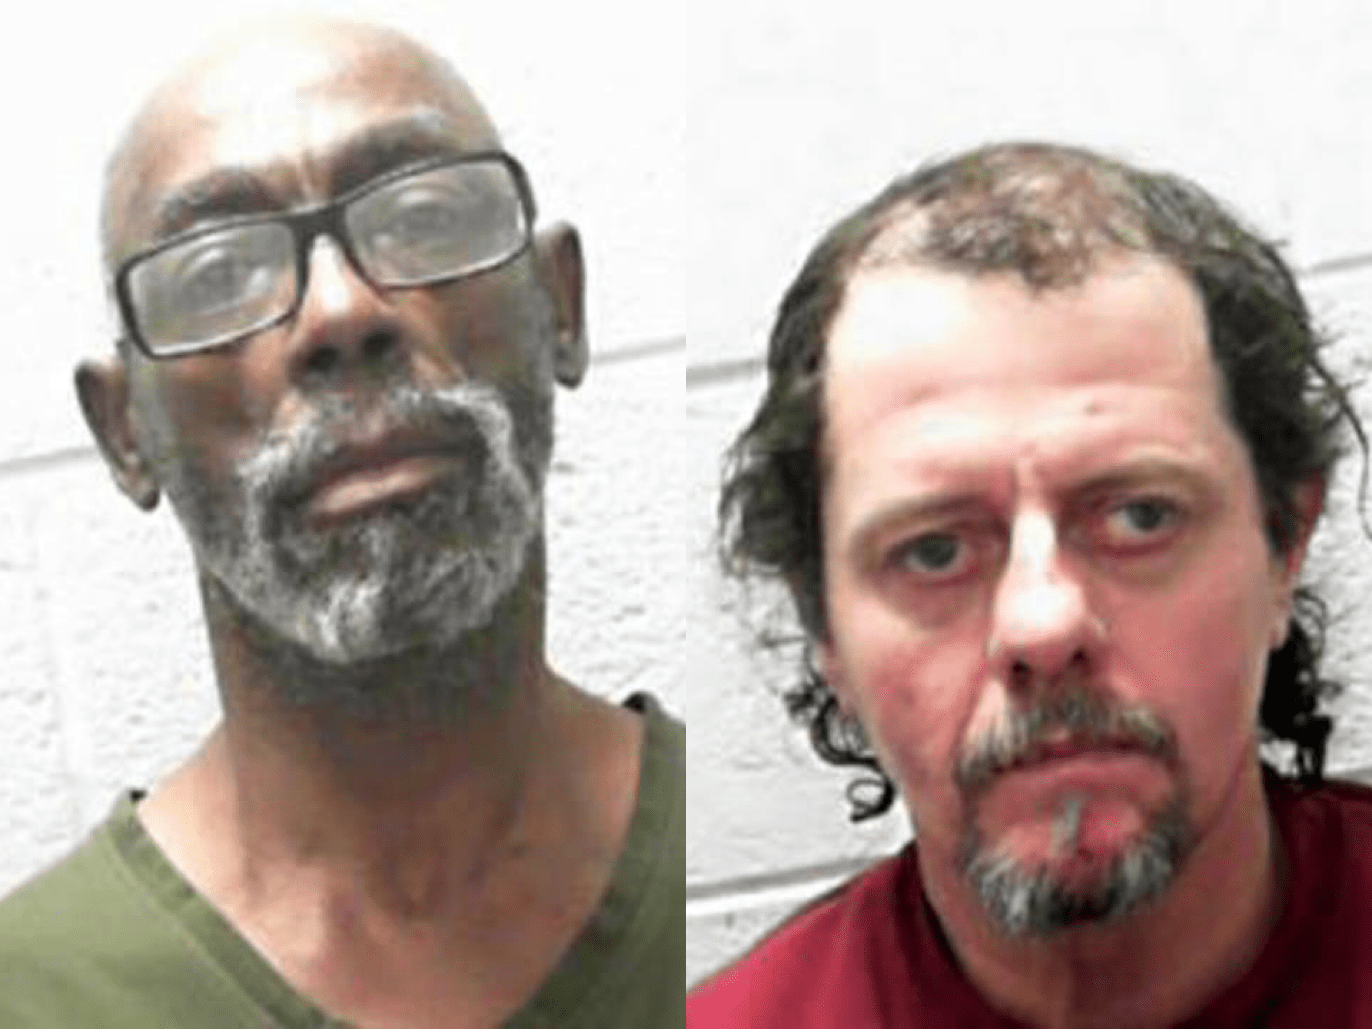 Two men face drug charges in Randolph County following